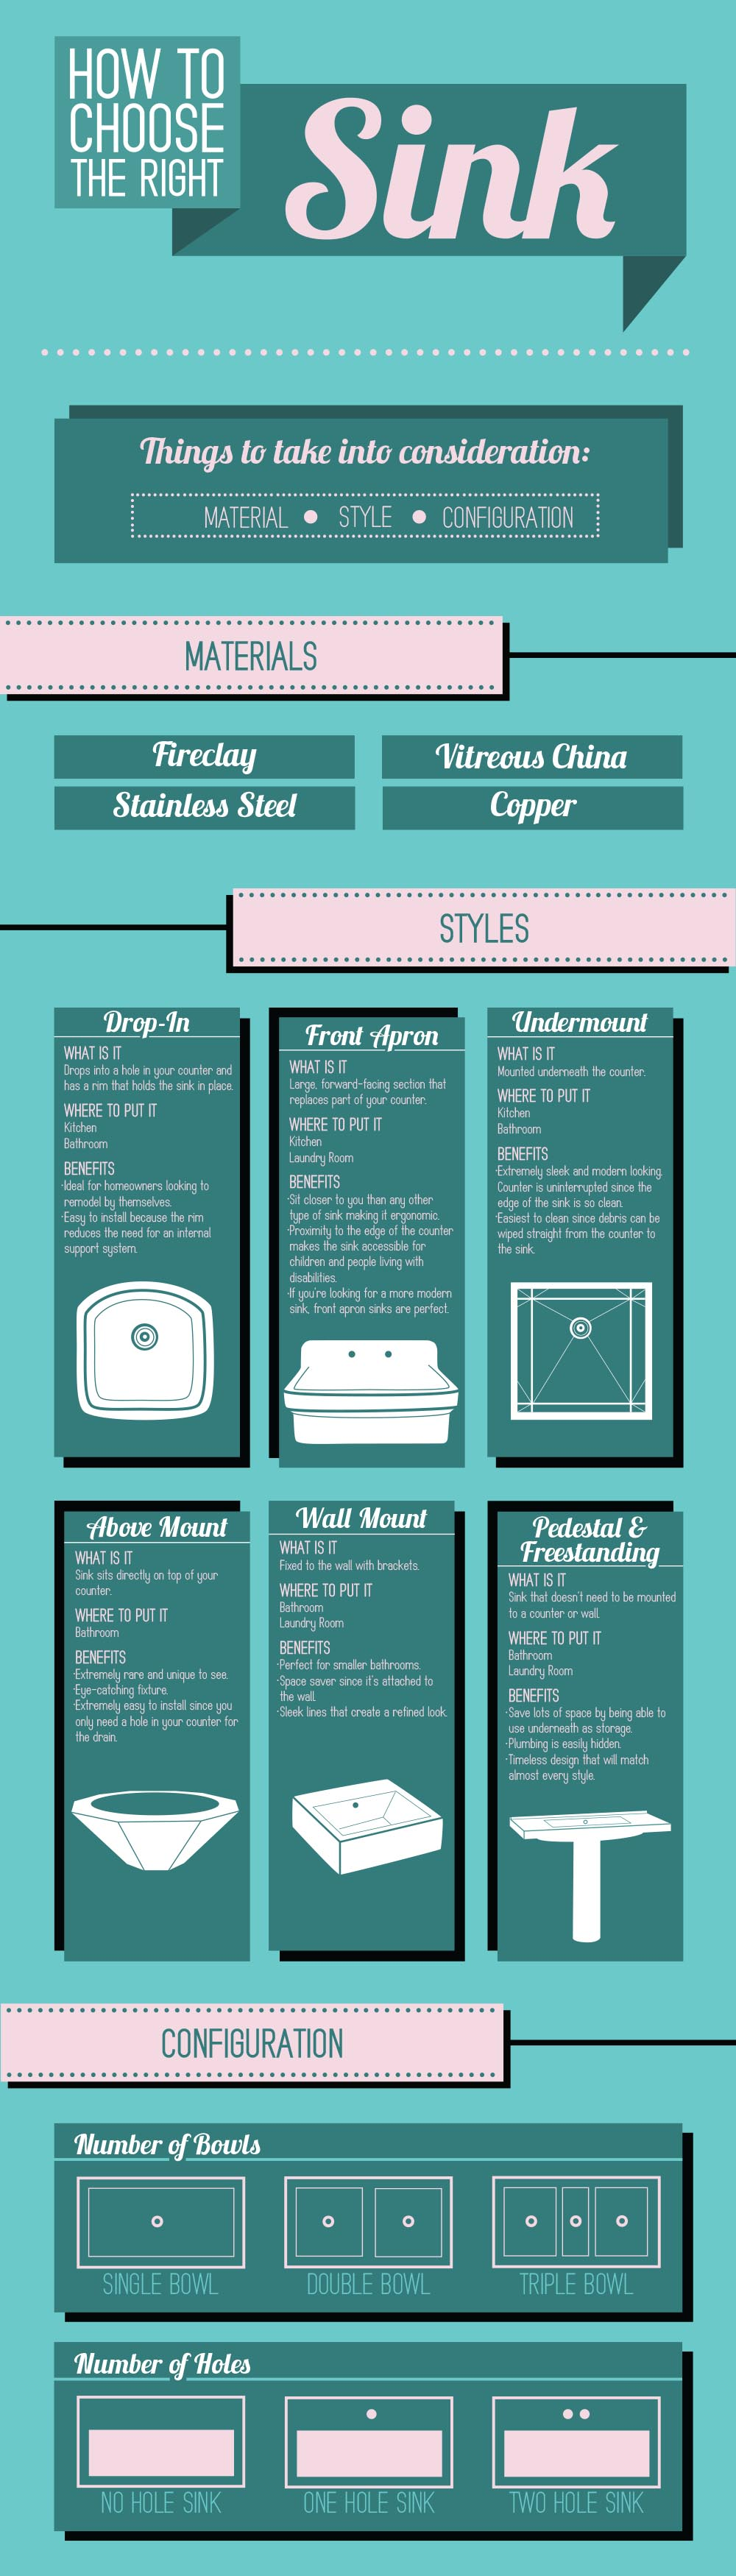 Infographic: How To Choose The Right Sink